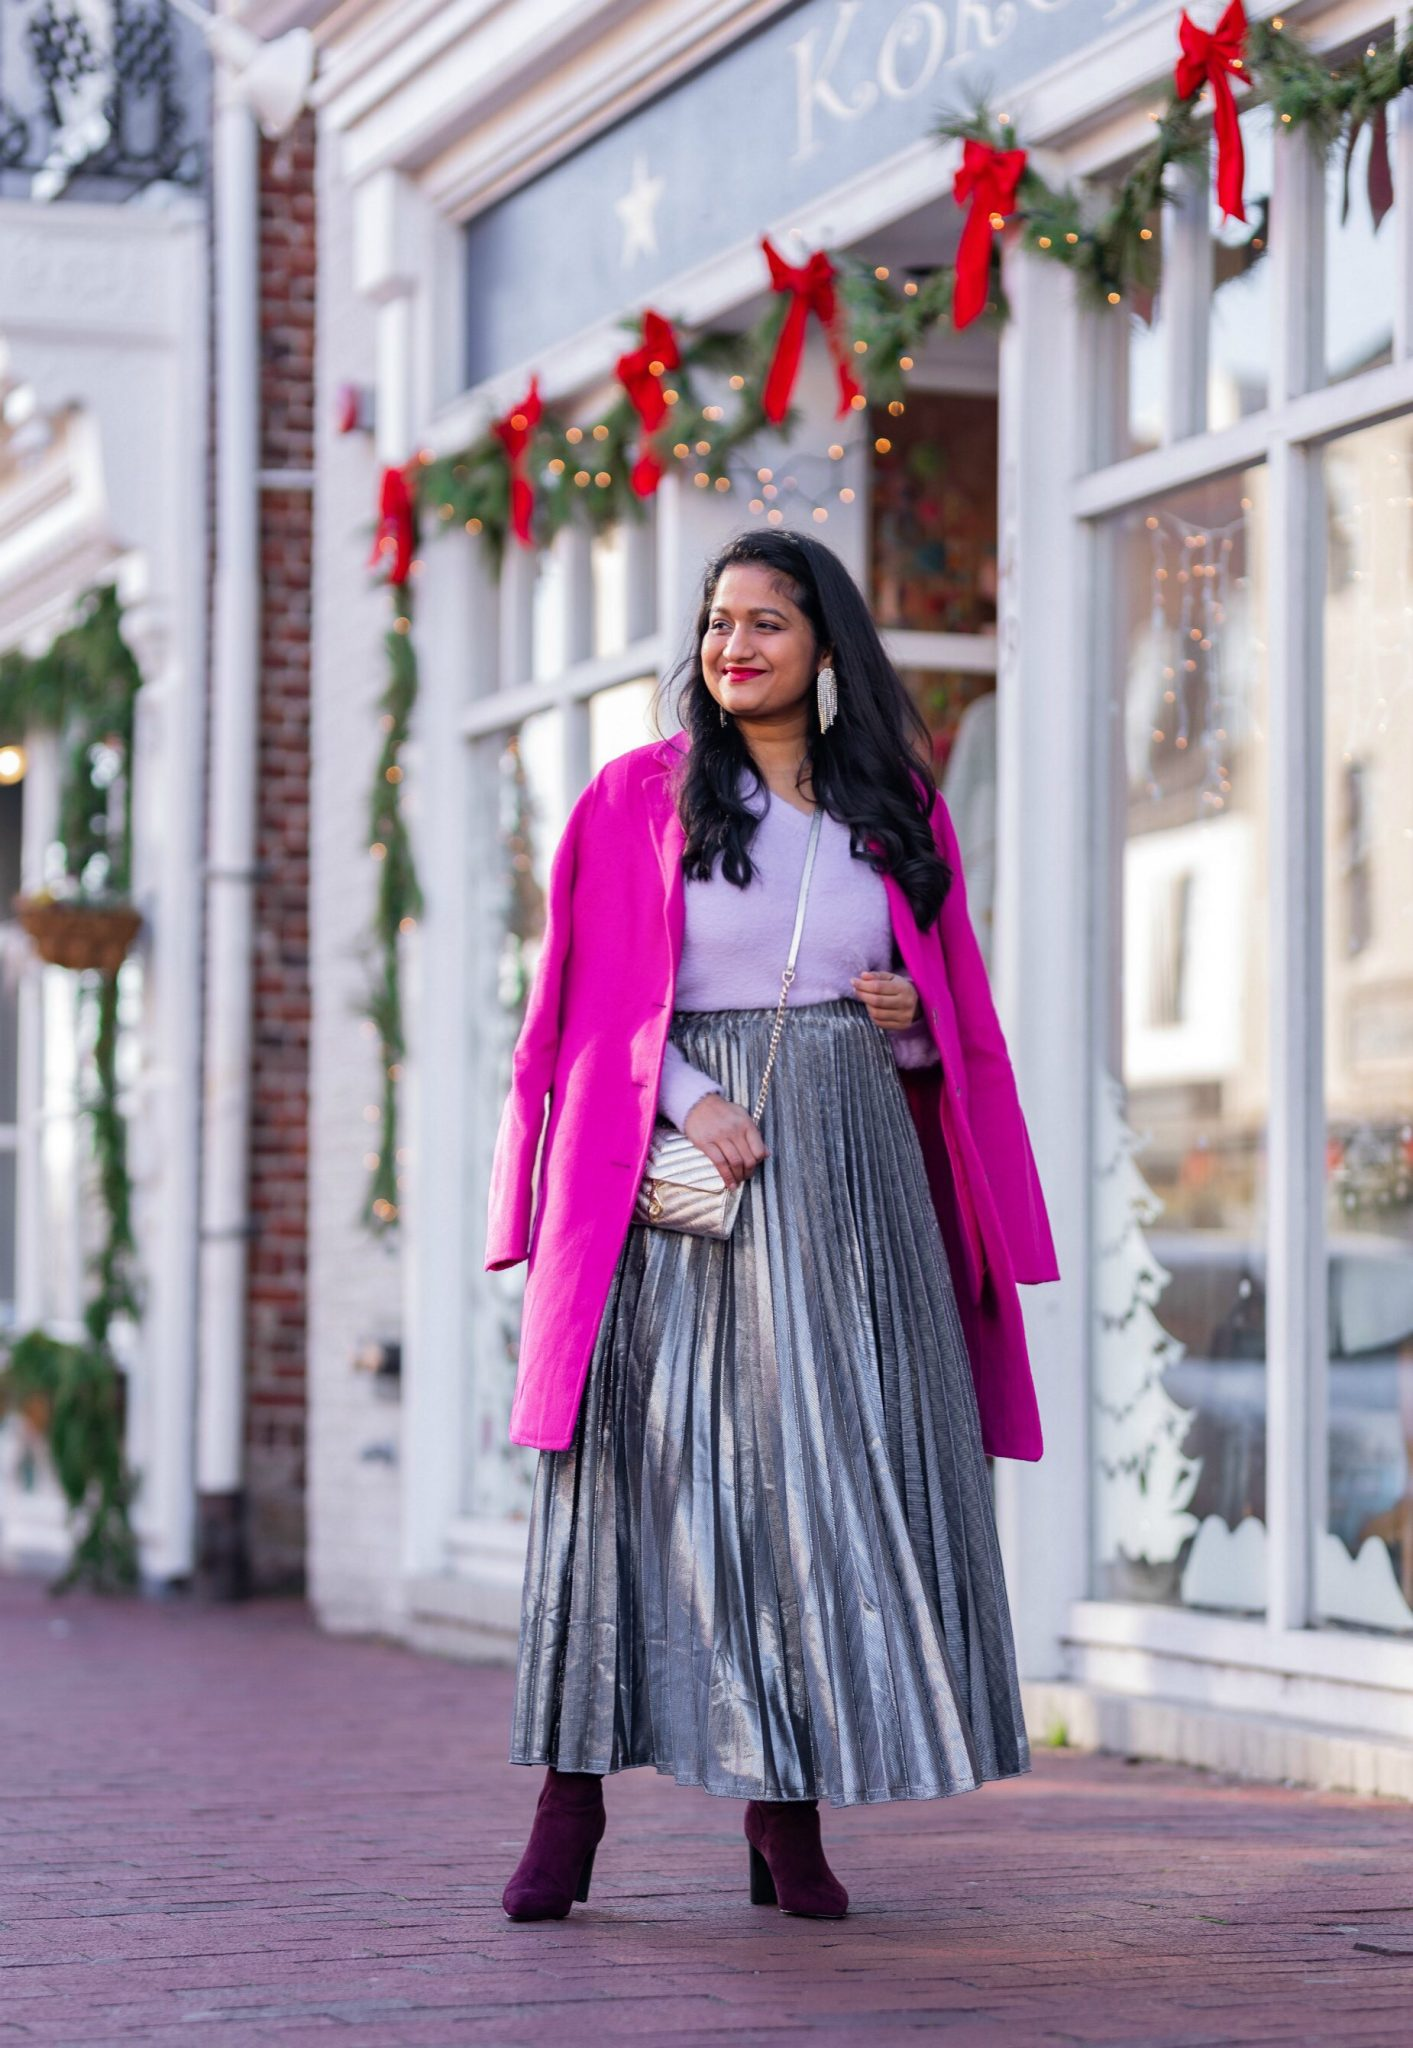 Amazon Holiday Fashion Favorites Under $50, featured by top US modest fashion blog, Dreaming Loud: image of a woman wearing Halogen Fuzzy V-Neck Sweater, amazon Silver pleated midi skirt,Banana Republic Topcoat in hot pink, Boden Burgundy knee high boots